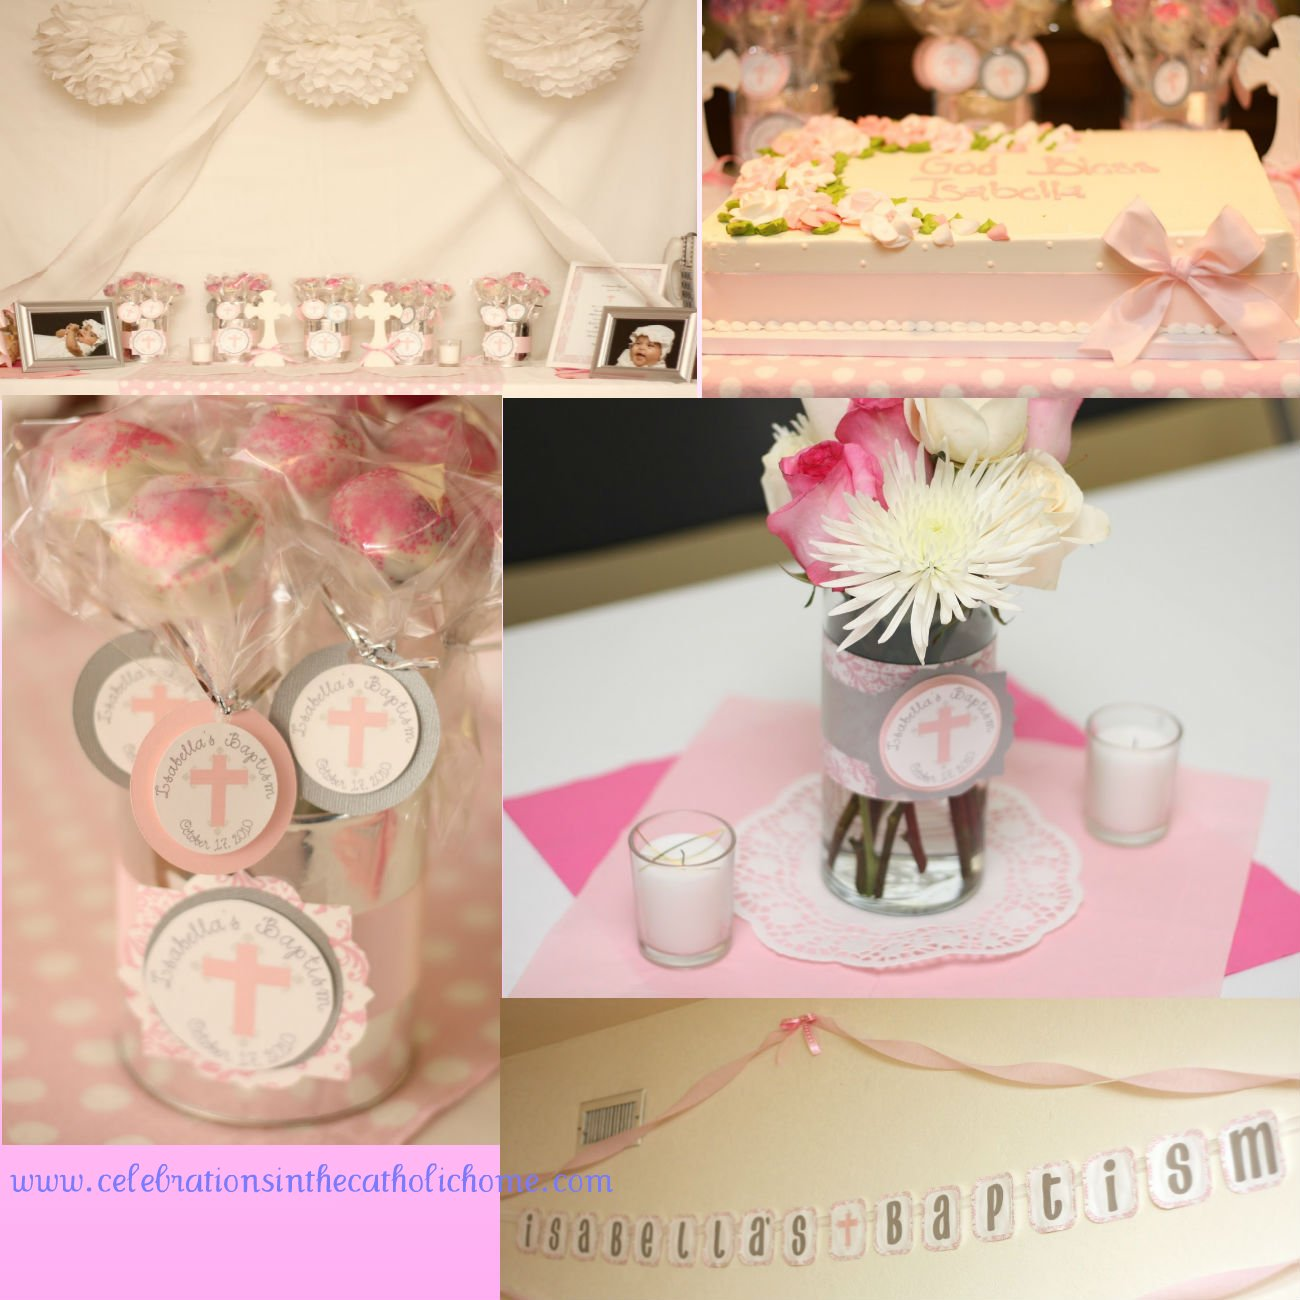 Diy baptism centerpiece party invitations ideas for Baby baptism decoration ideas